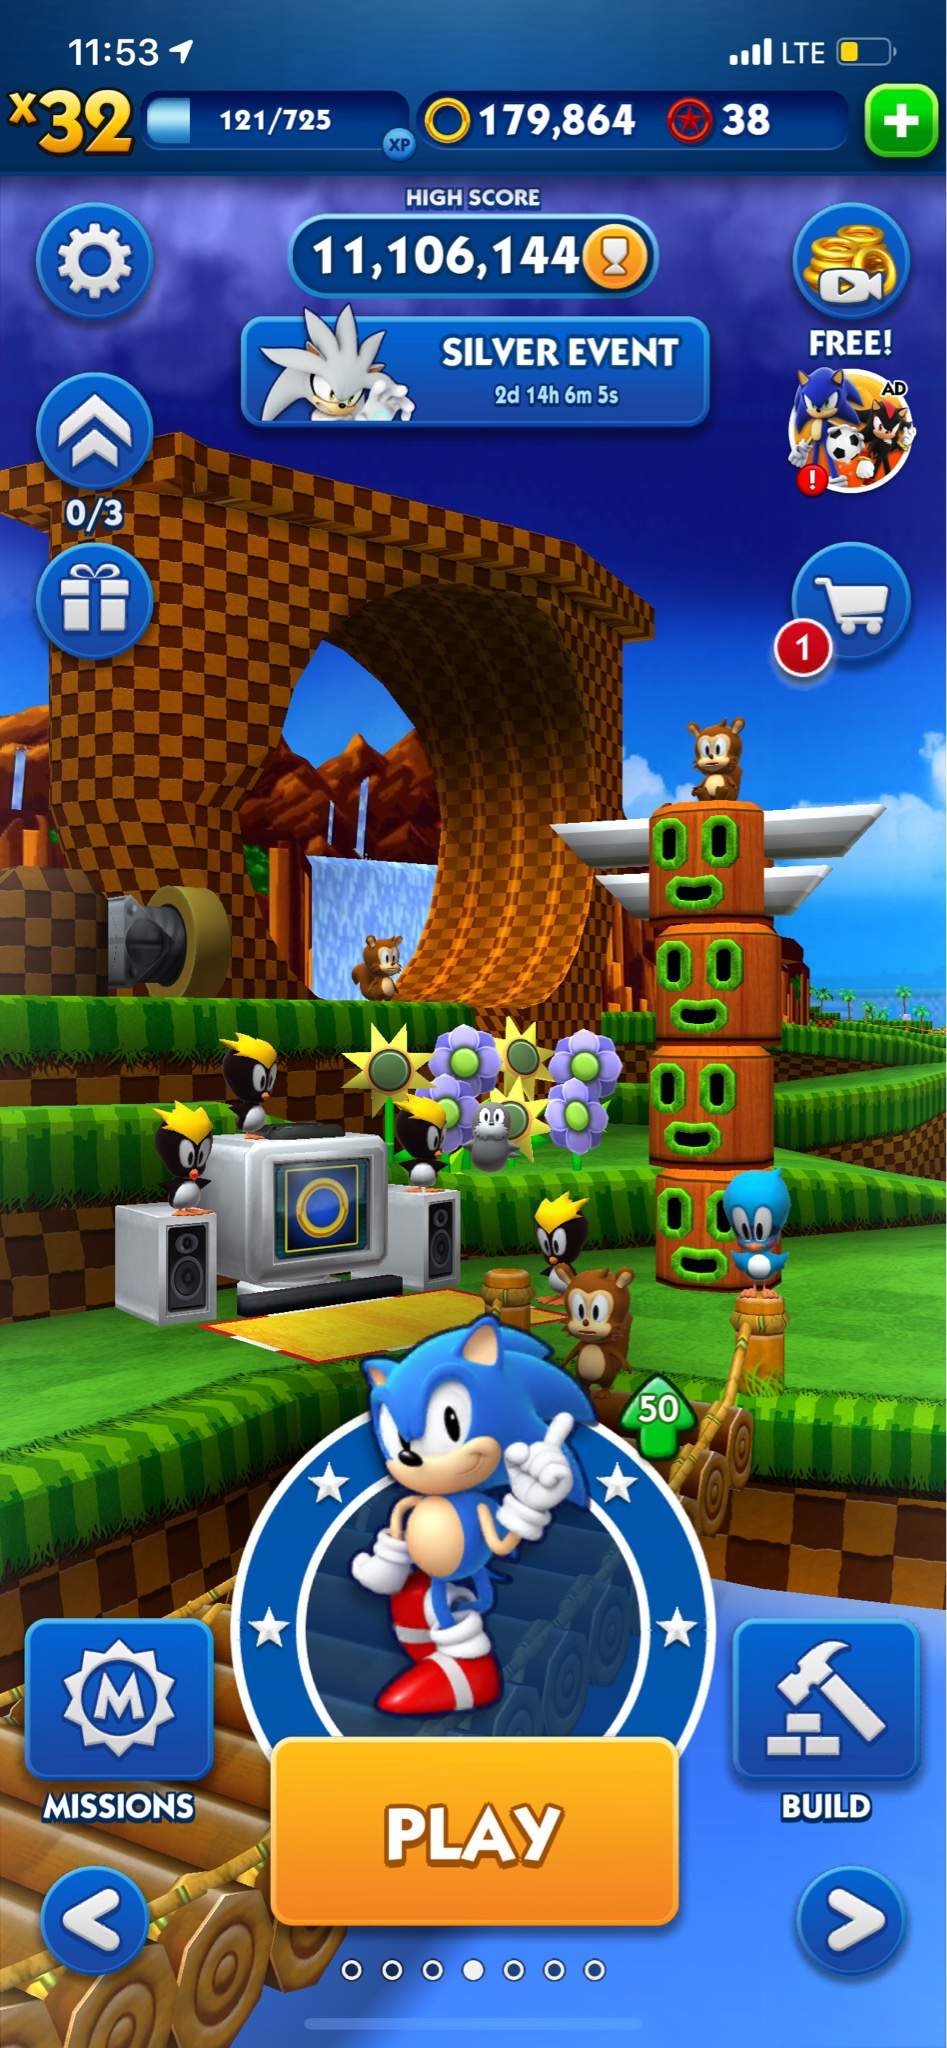 My New High Score In Sonic Dash Sonic The Hedgehog Amino